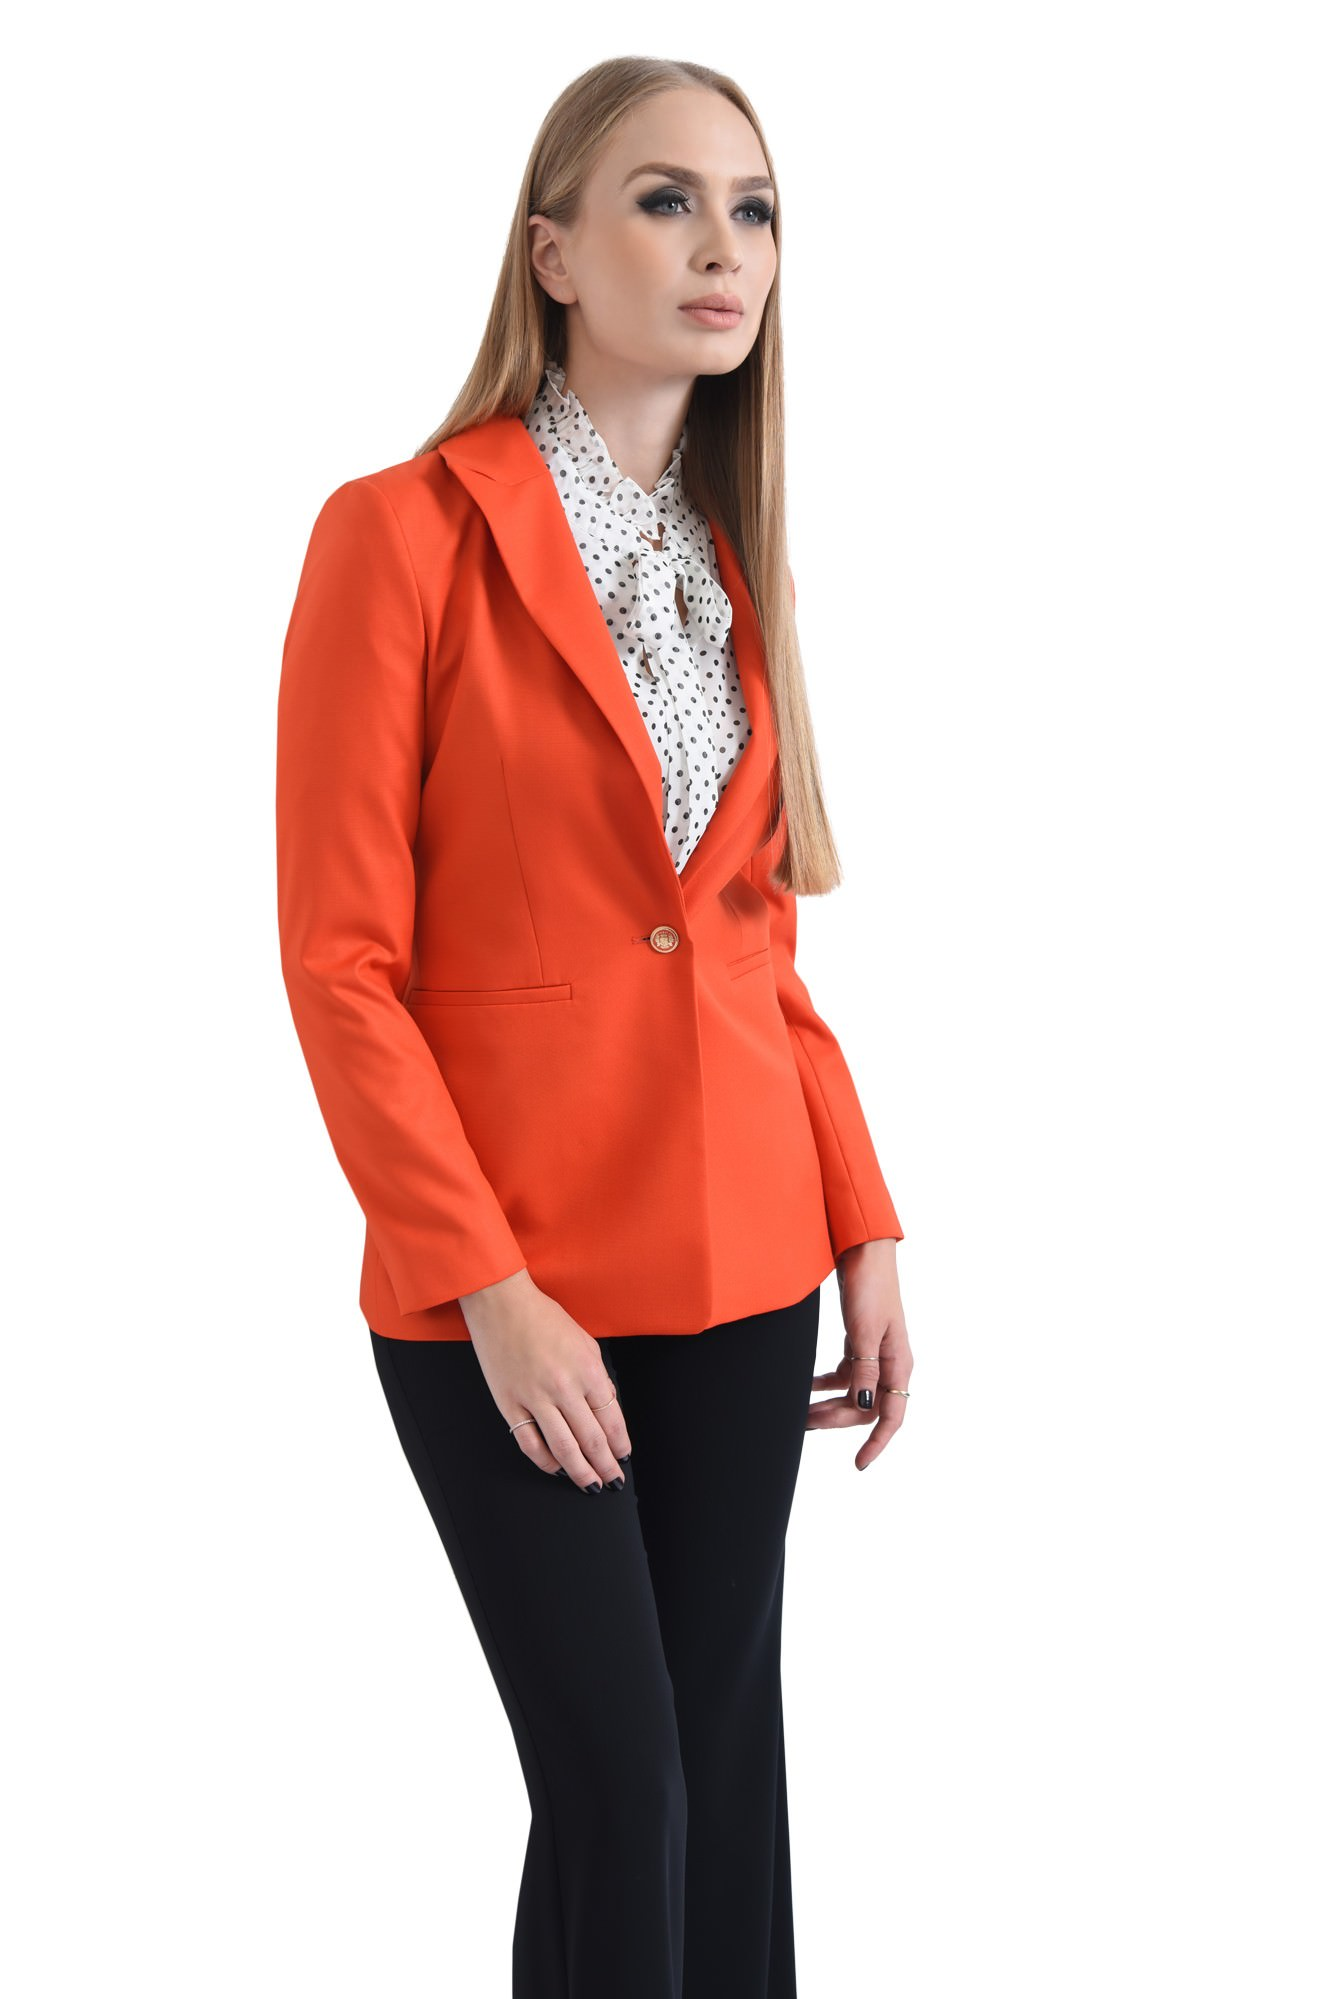 0 - SACOU OFFICE DREPT S 128-ORANGE